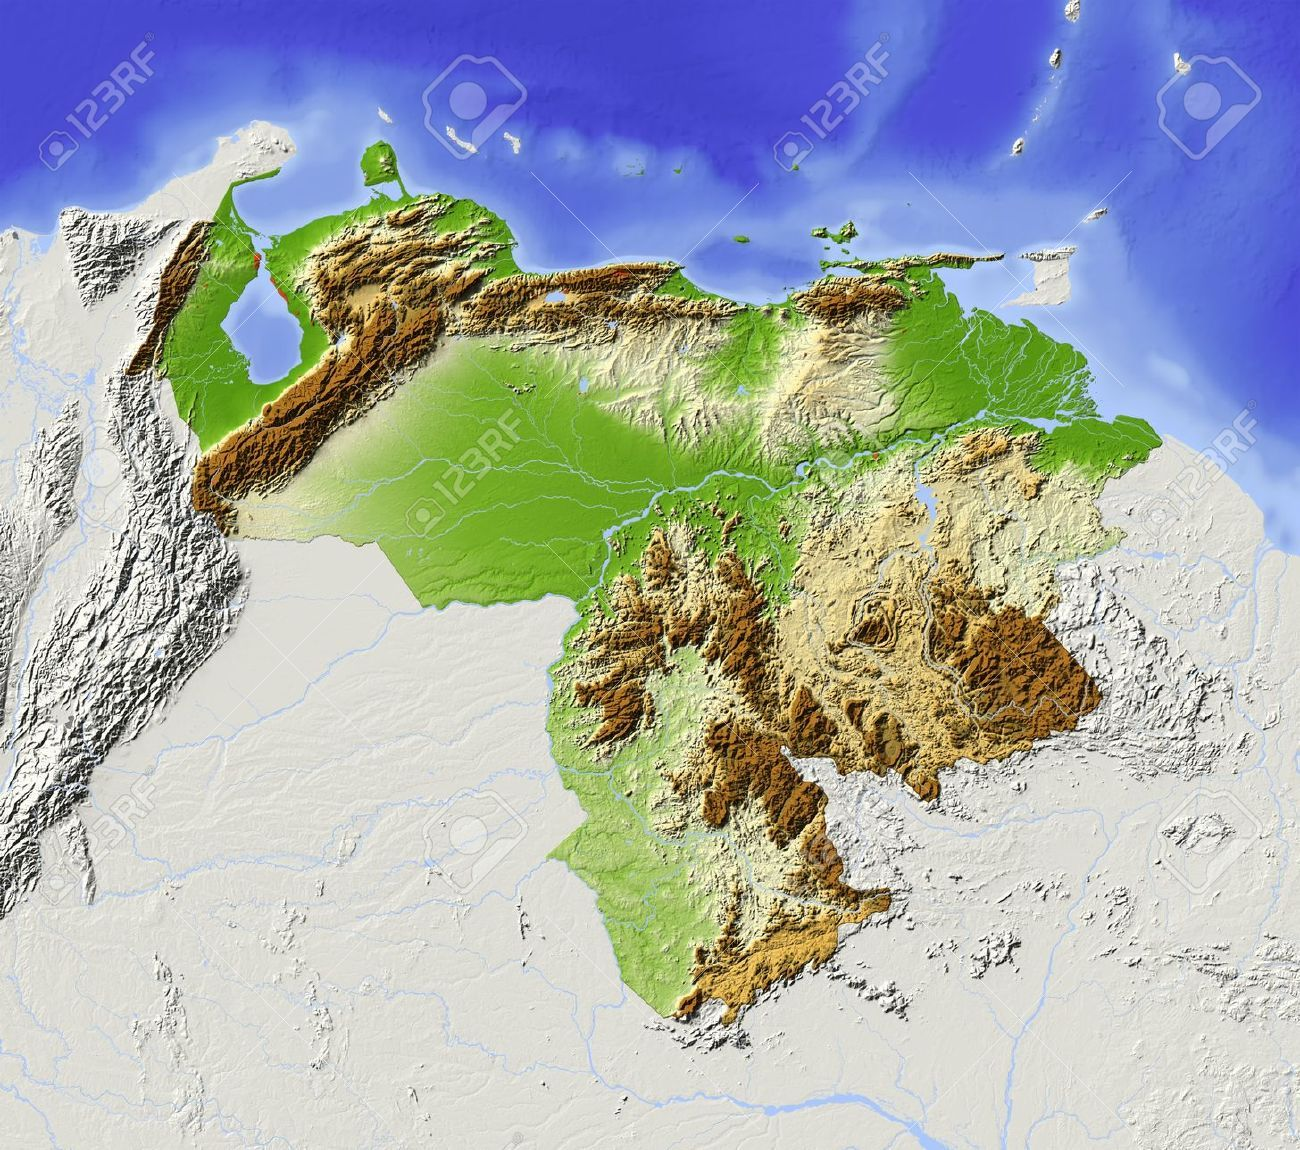 Political Map Of Venezuela And Venezuela Details Map Quotes - Venezuela cities small scale map